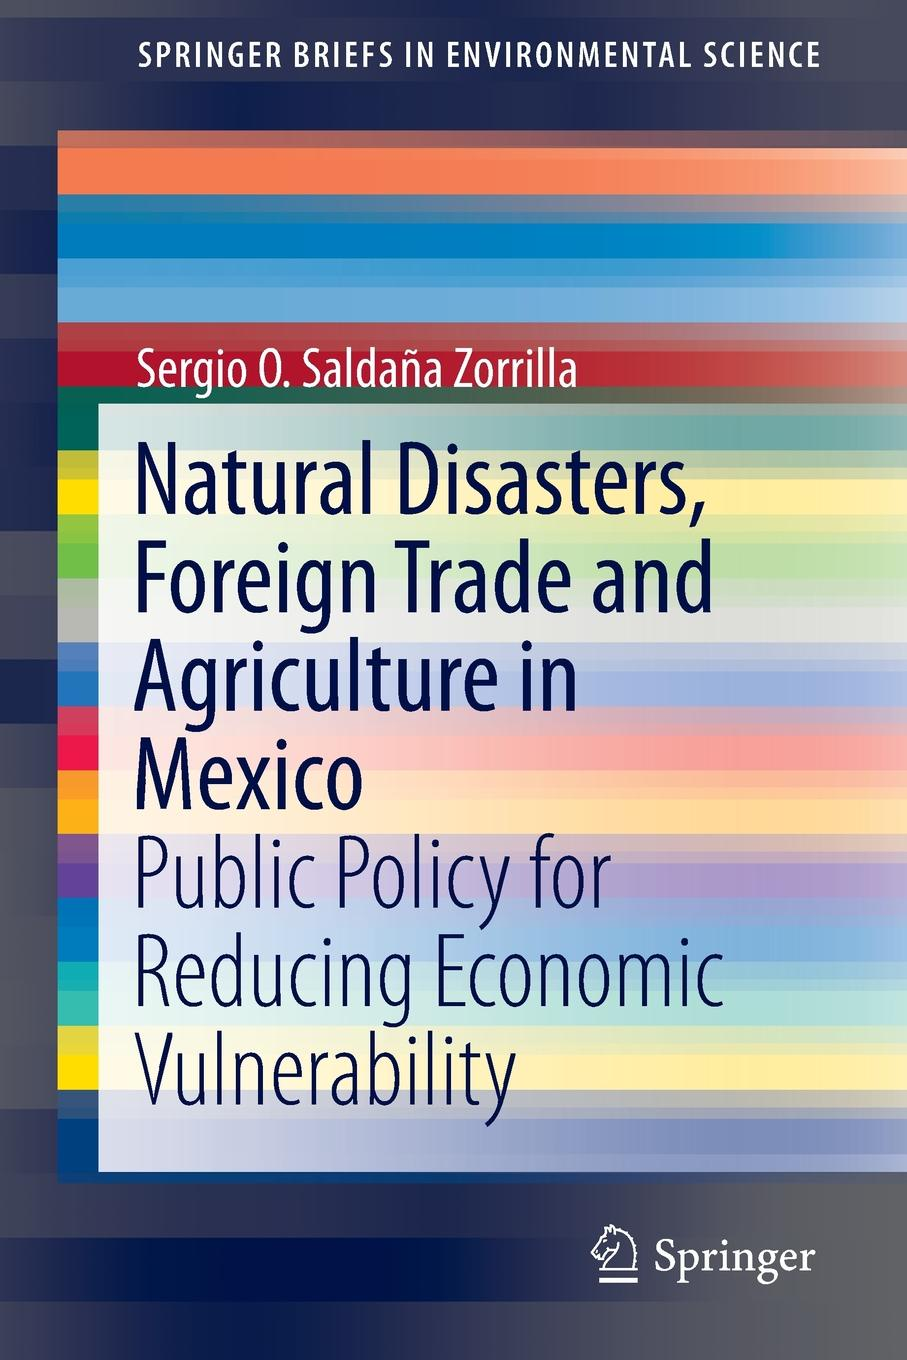 PhD Sergio O. Saldaña Zorrilla Natural Disasters, Foreign Trade and Agriculture in Mexico. Public Policy for Reducing Economic Vulnerability richard baldwin rikard forslid philippe martin economic geography and public policy